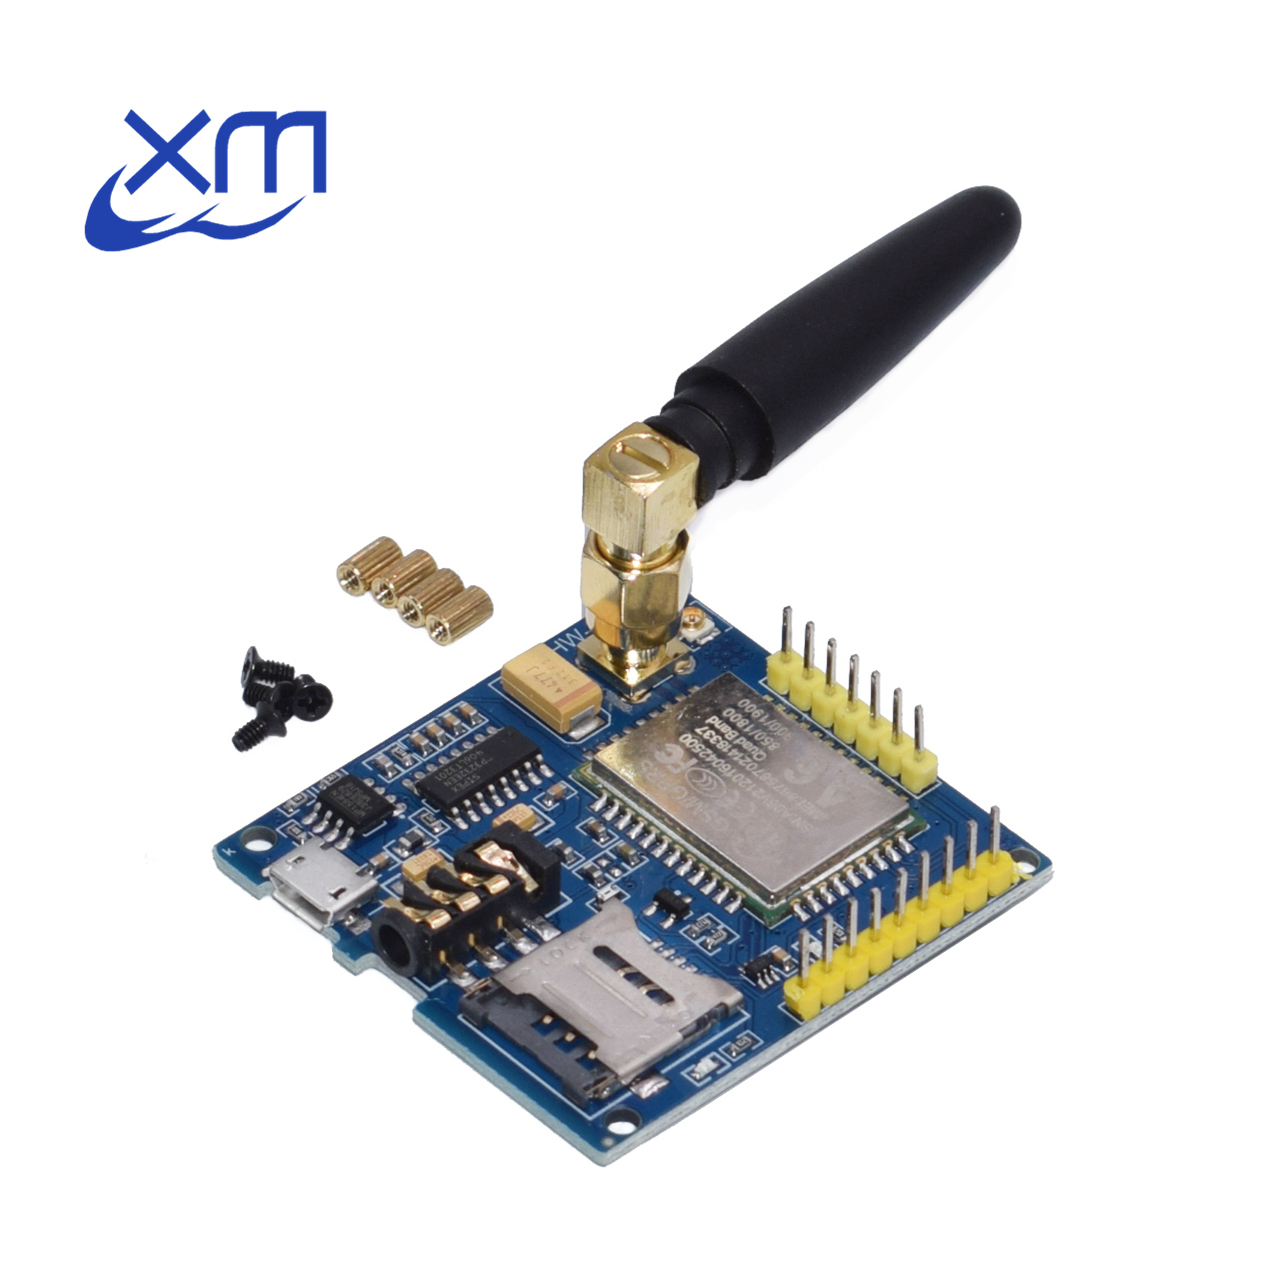 10*A6 GPRS Pro Serial GPRS GSM Module Core DIY Developemnt Board TTL RS232 With Antenna GPRS Wireless Module Data Replace SIM900-in Integrated Circuits from Electronic Components & Supplies